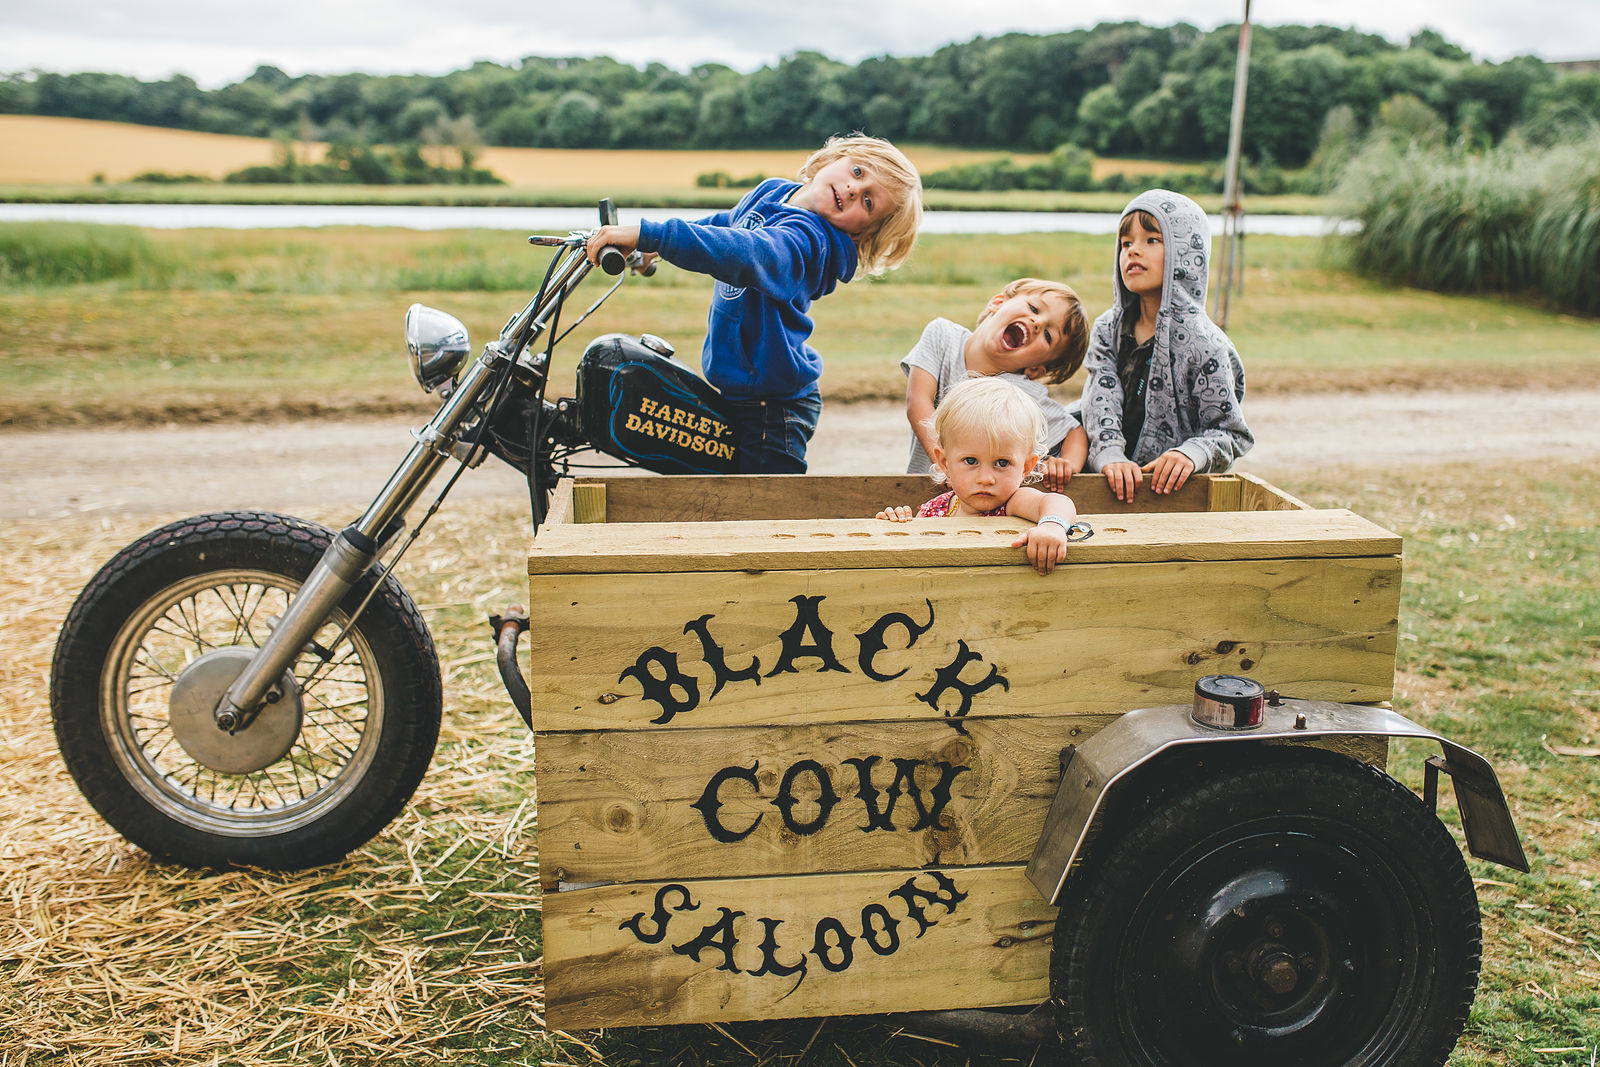 The Black Cow Saloon